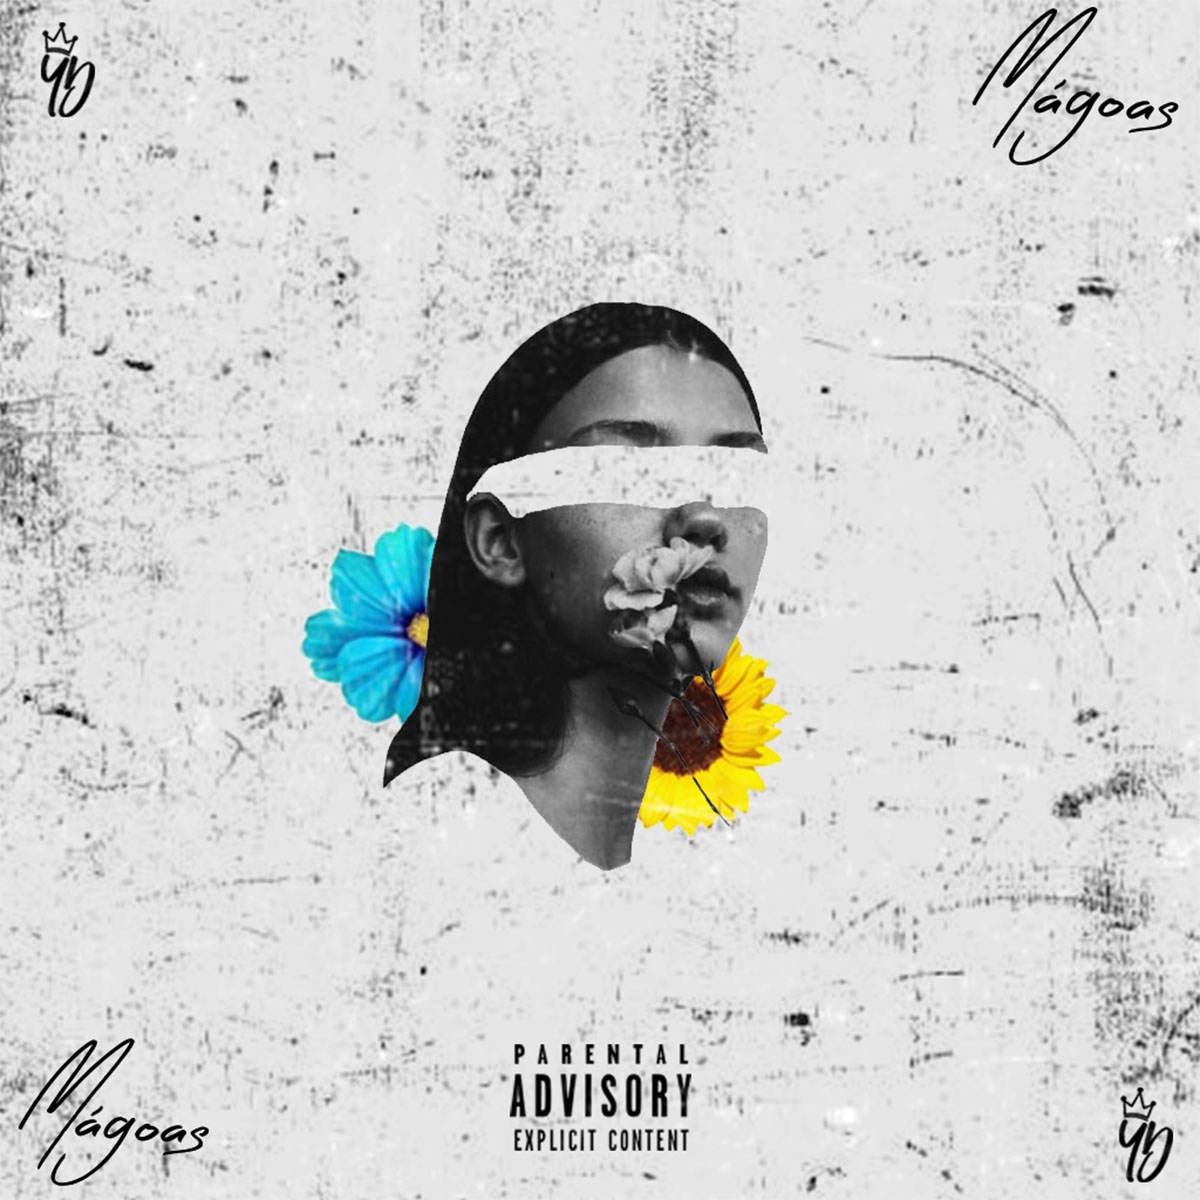 Young Dreamers - Mágoas